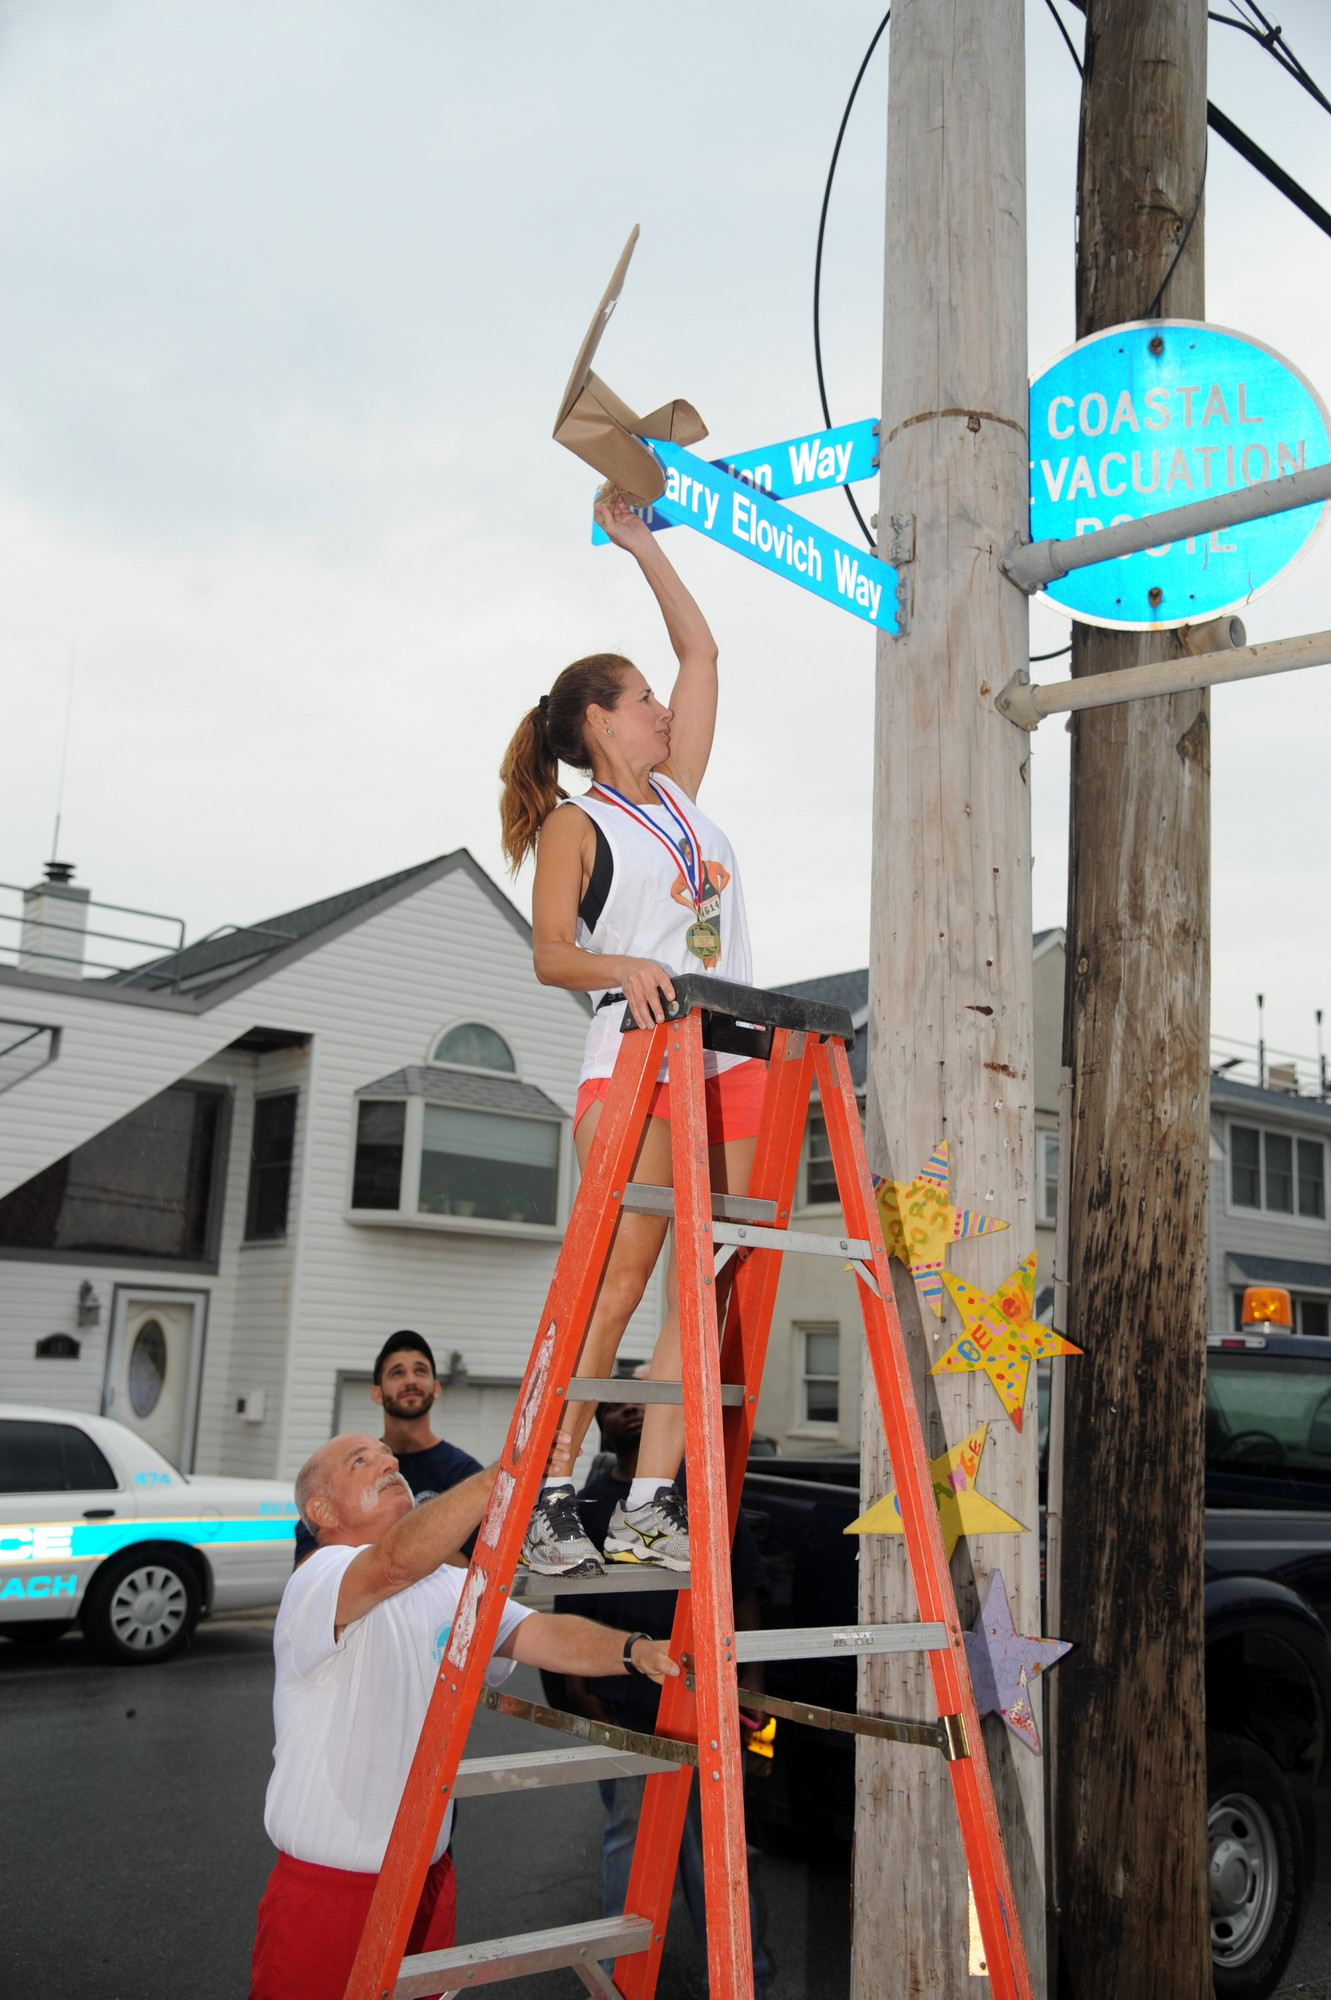 Elovich's daughter, Lisa, unveiled the new street sign in honor of her late father.